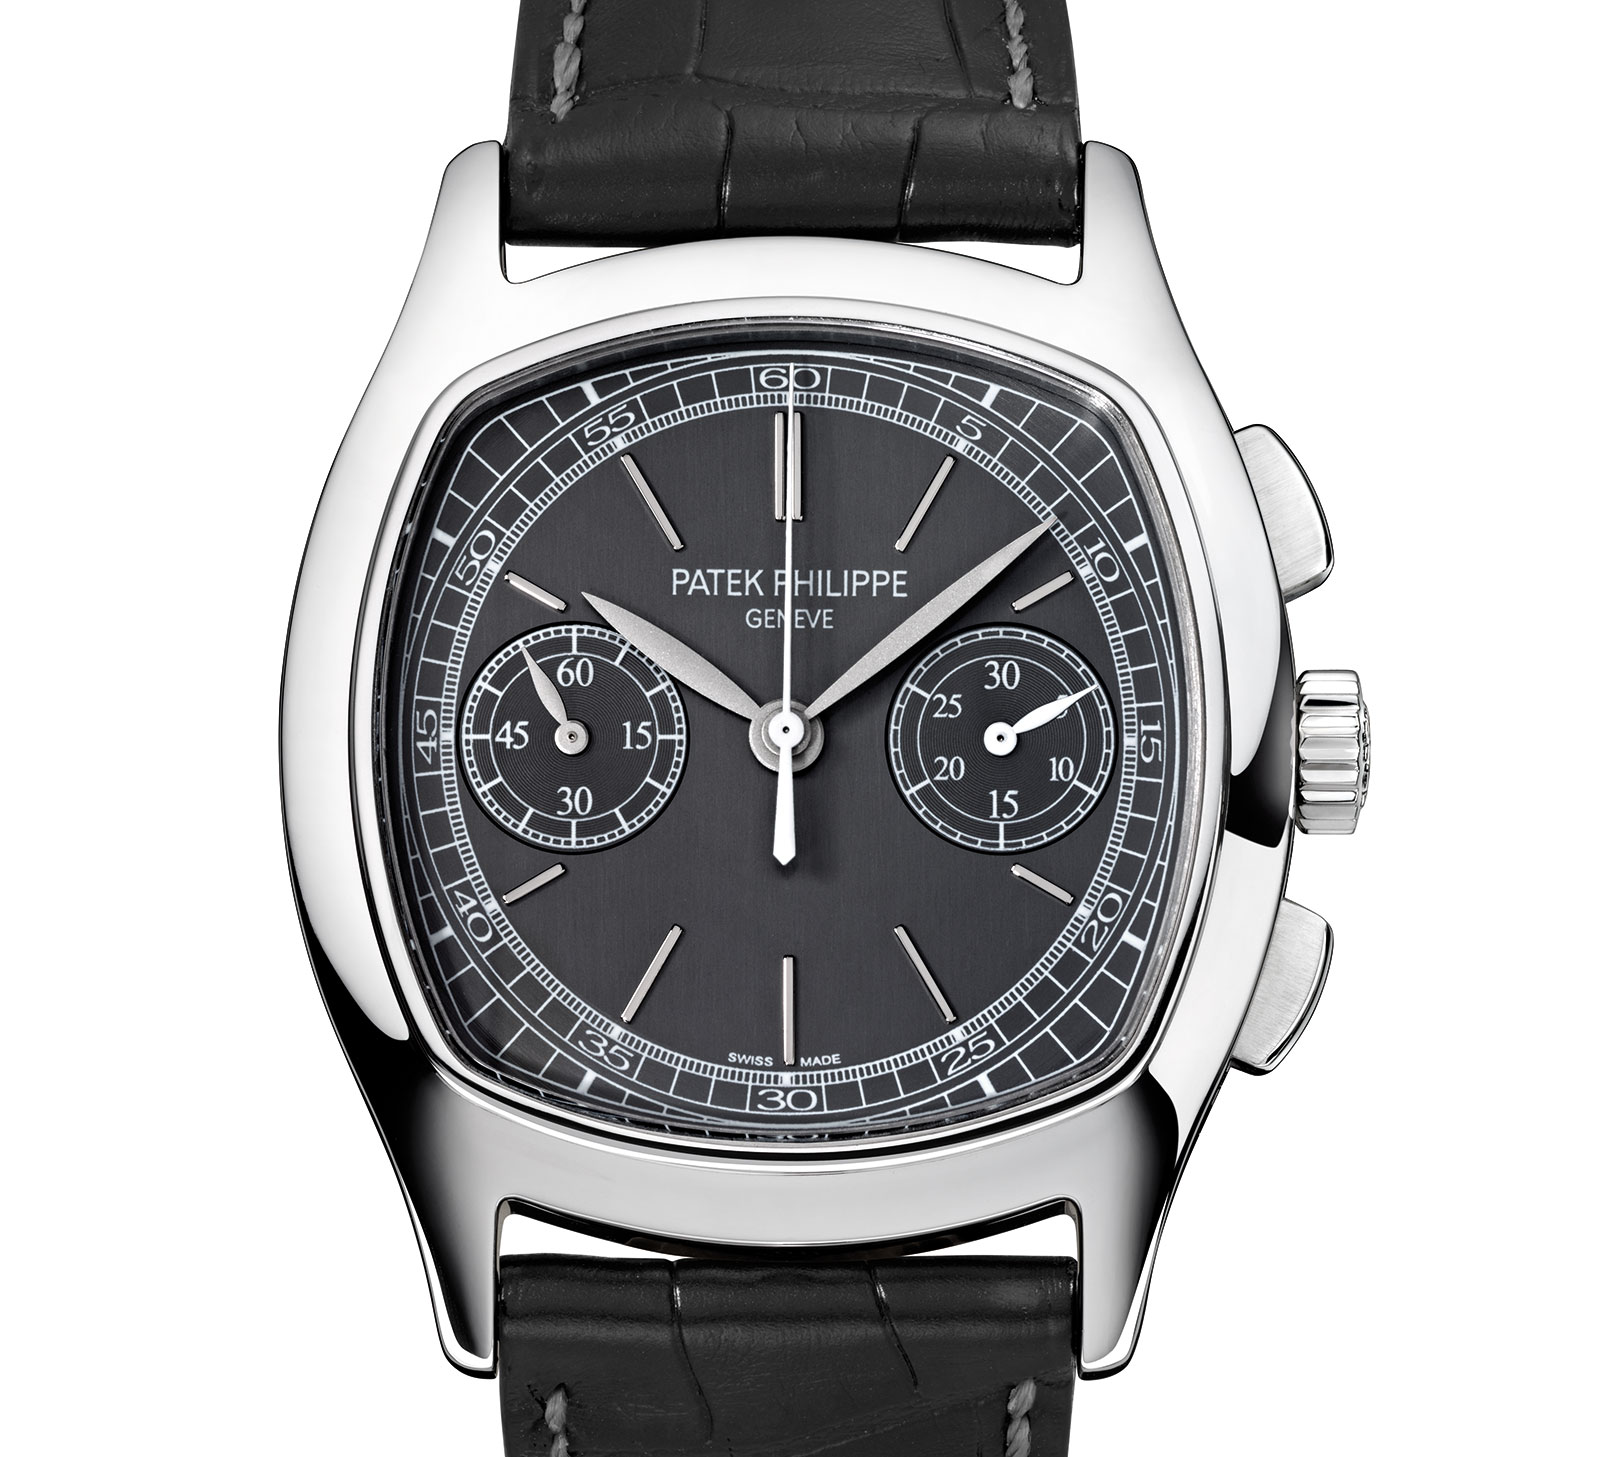 Patek Philippe Unveils Ref 3670A Steel Chronograph With